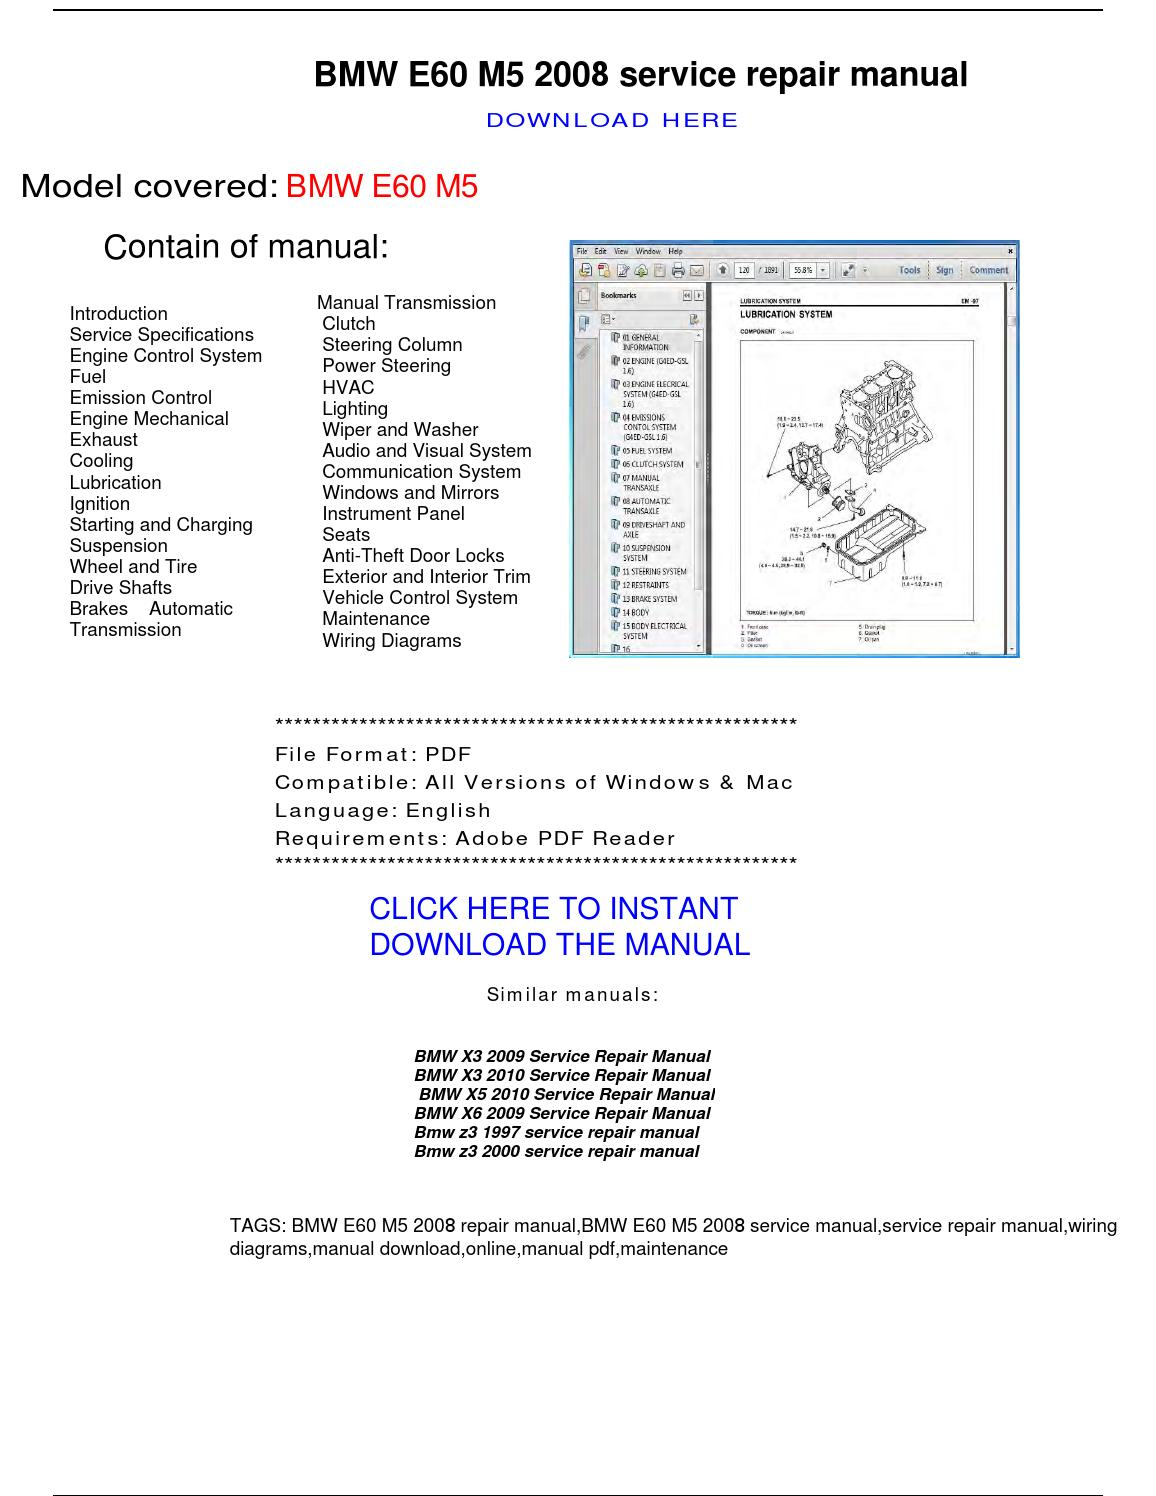 bmw e60 m5 2008 repair manual by repairmanuals issuu. Black Bedroom Furniture Sets. Home Design Ideas